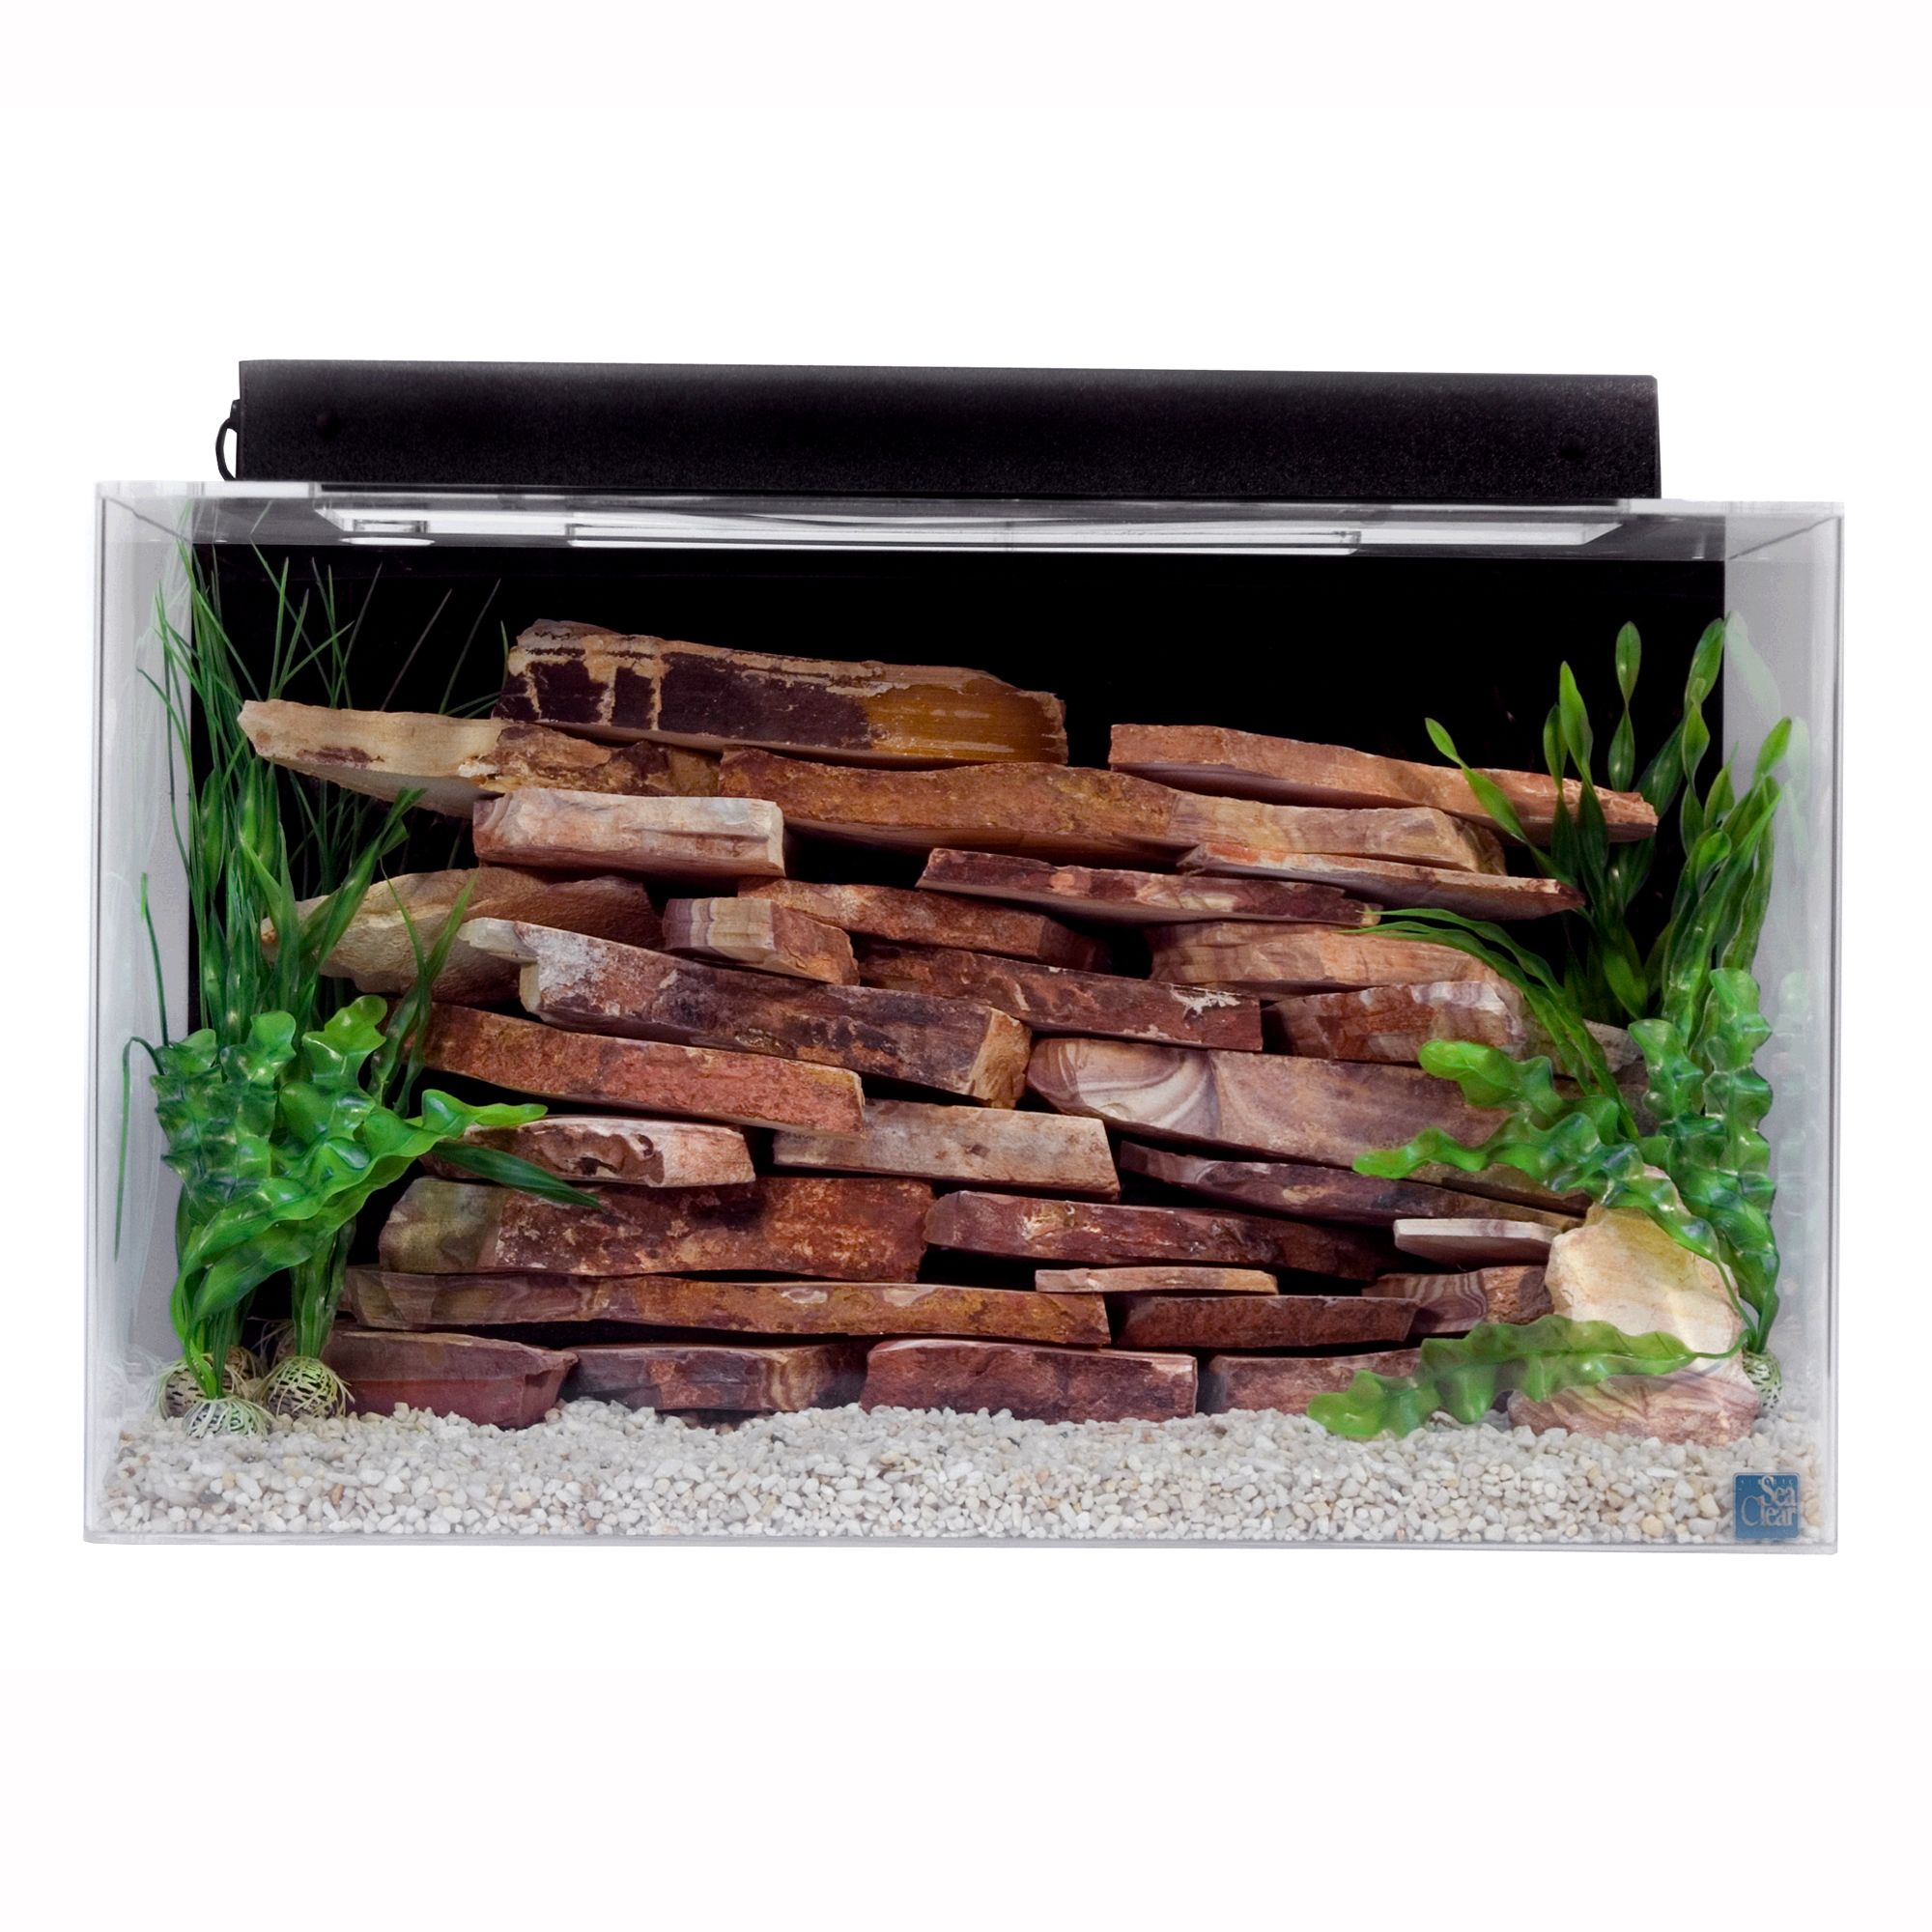 SeaClear 29 Gallon Show Tank size: 29 Gal, Black, North American Pet Products 5073955